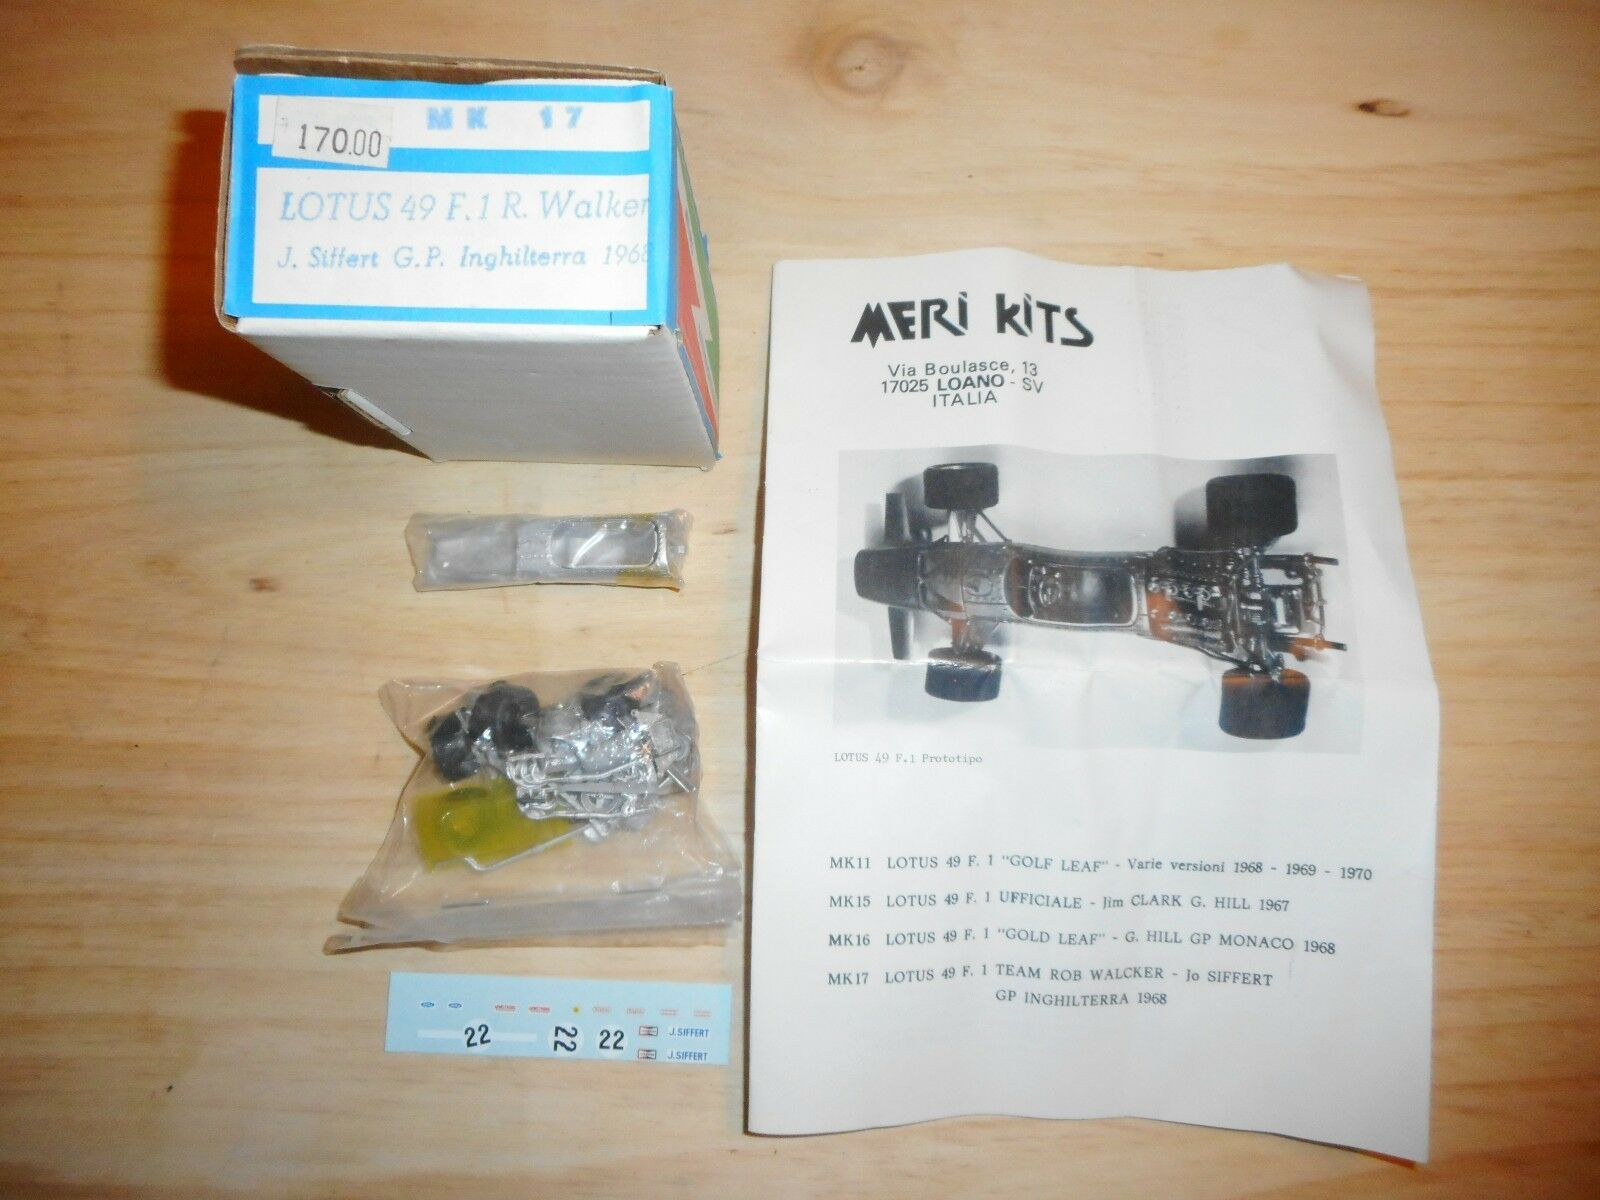 MERI KITS kit vintage 1 43 LOTUS 49 F.1  R.WALKER grand prix ANGLETERRE  1968